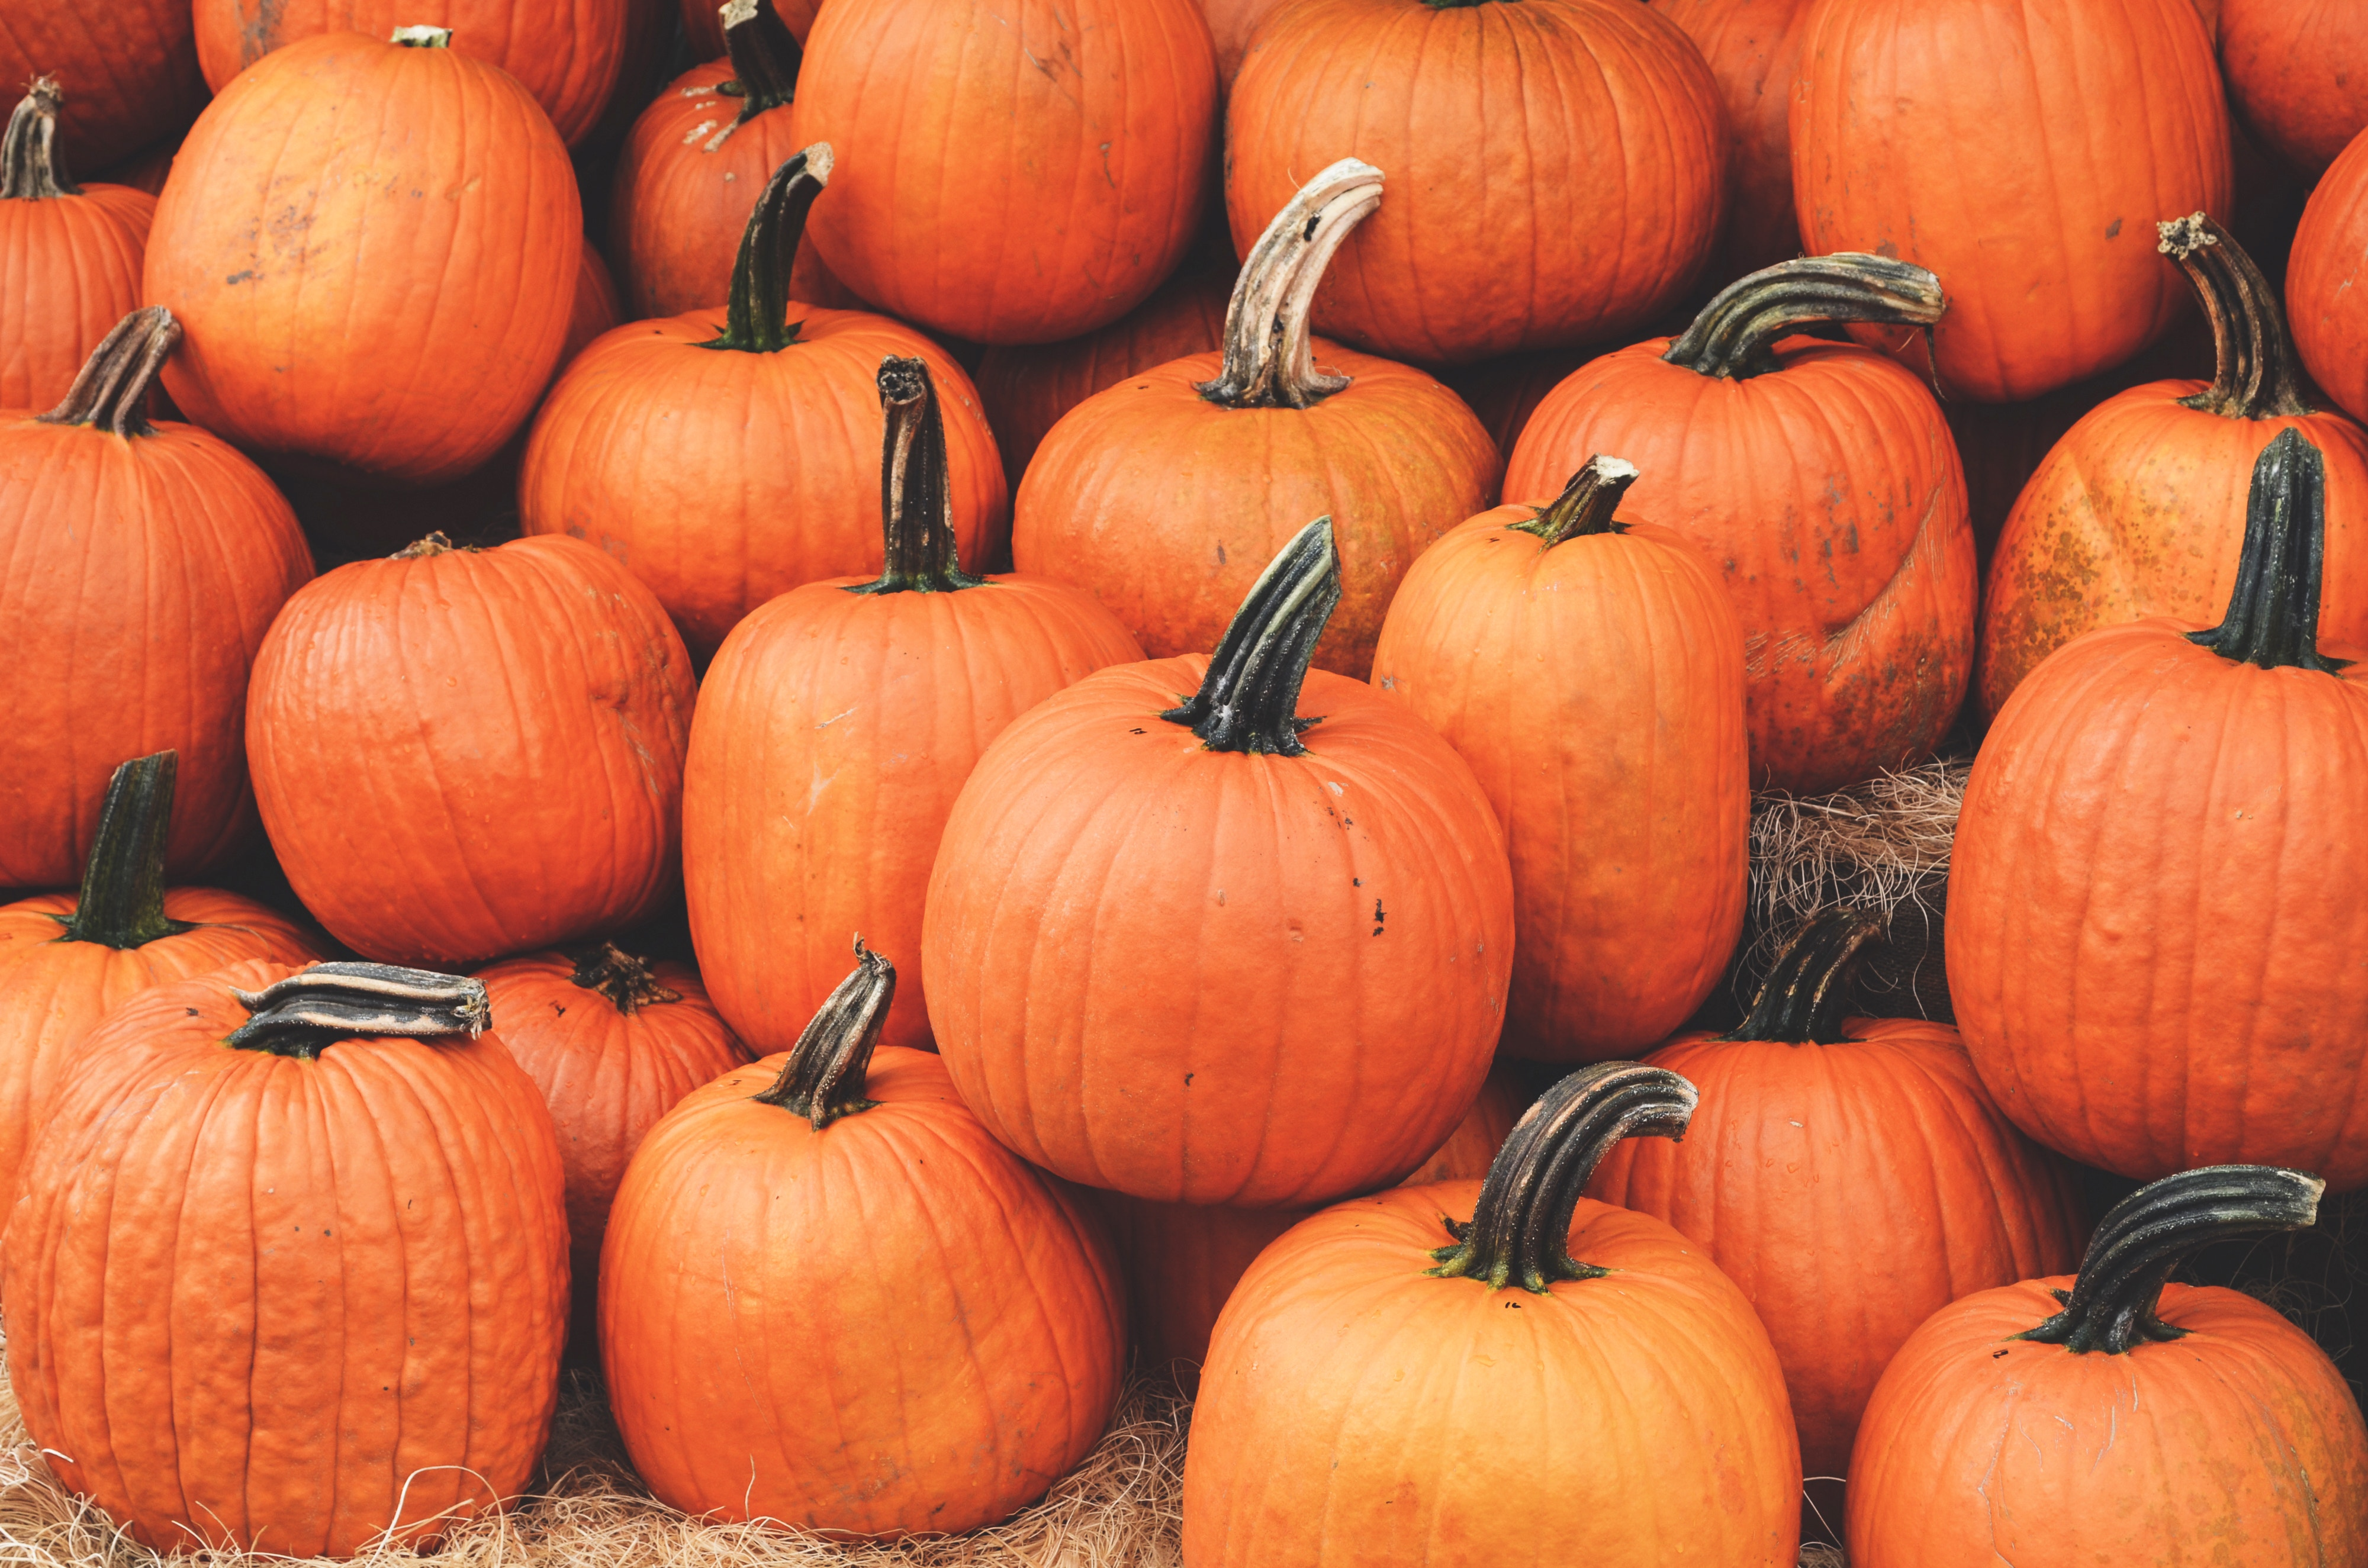 81509 download wallpaper Pumpkin, Food, Autumn, Ripe, Harvest, October screensavers and pictures for free